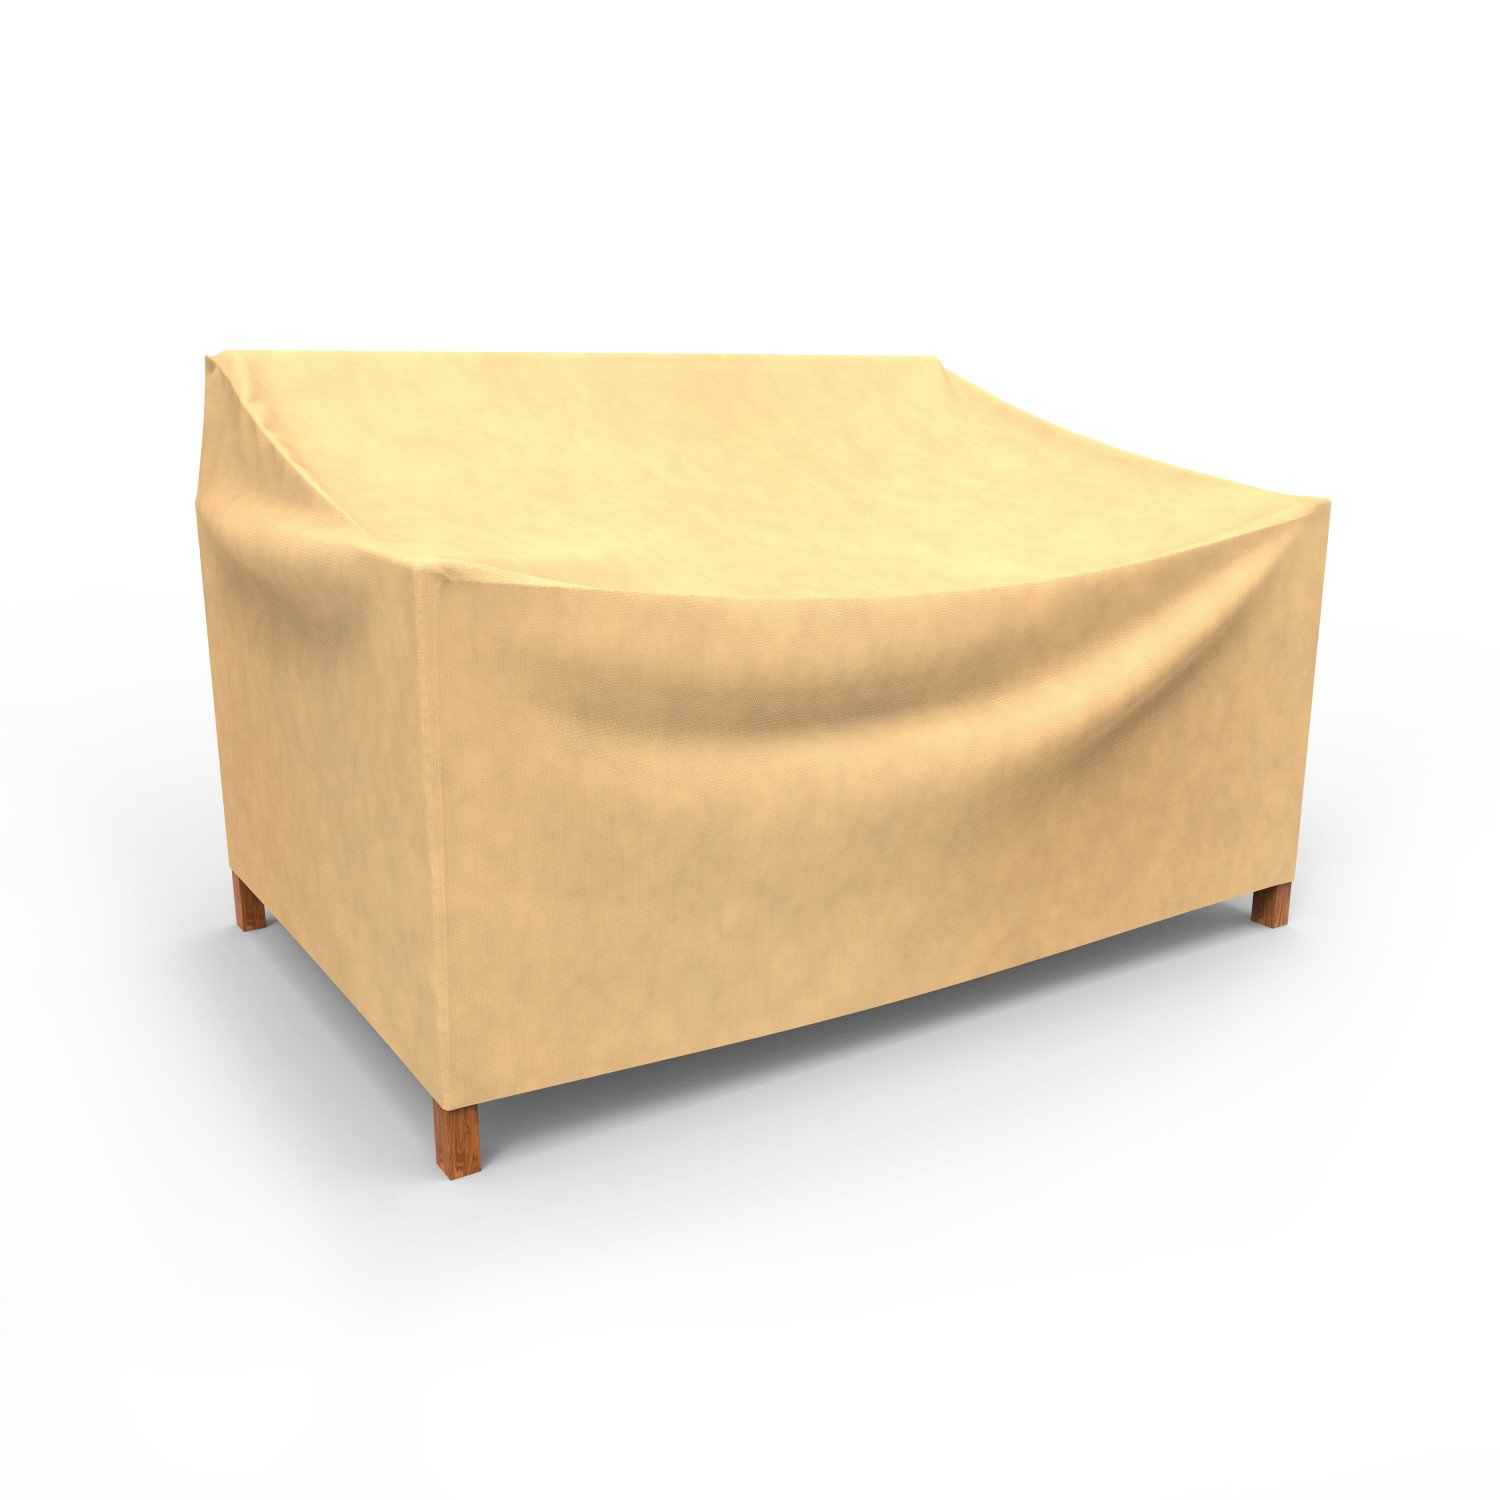 Superb Budge All Seasons Outdoor Patio Loveseat Cover Small Tan Bralicious Painted Fabric Chair Ideas Braliciousco